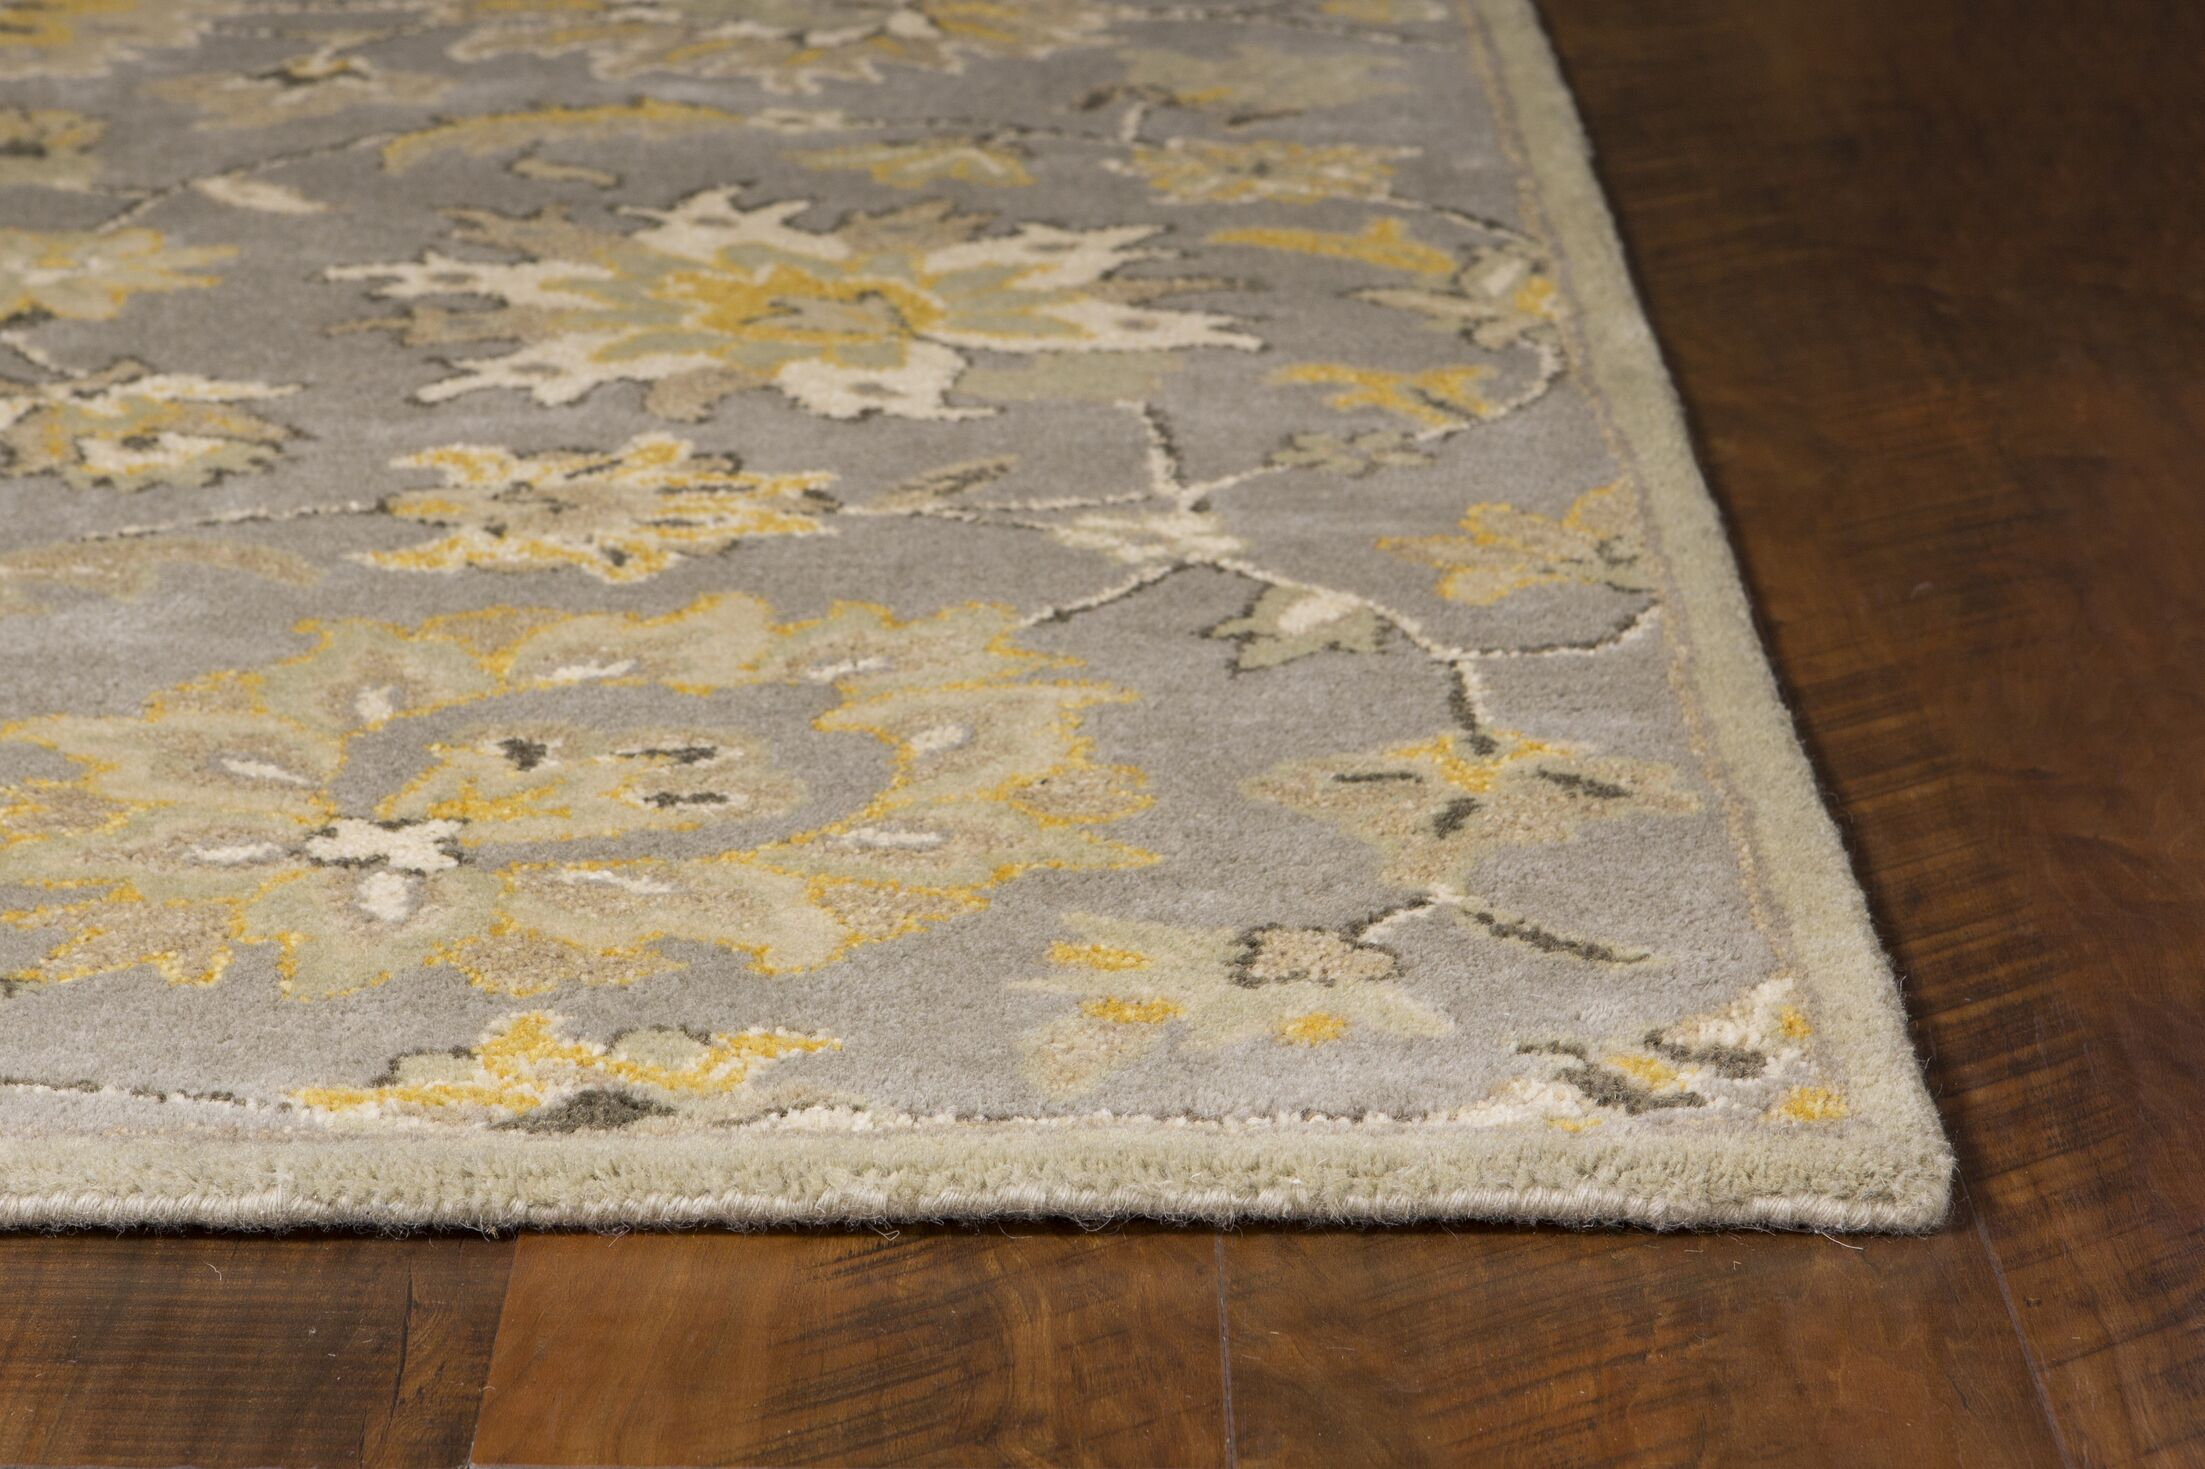 Glade Park-Gateway Hand-Tufted Gray/Yellow Area Rug Rug Size: Rectangle 7'9